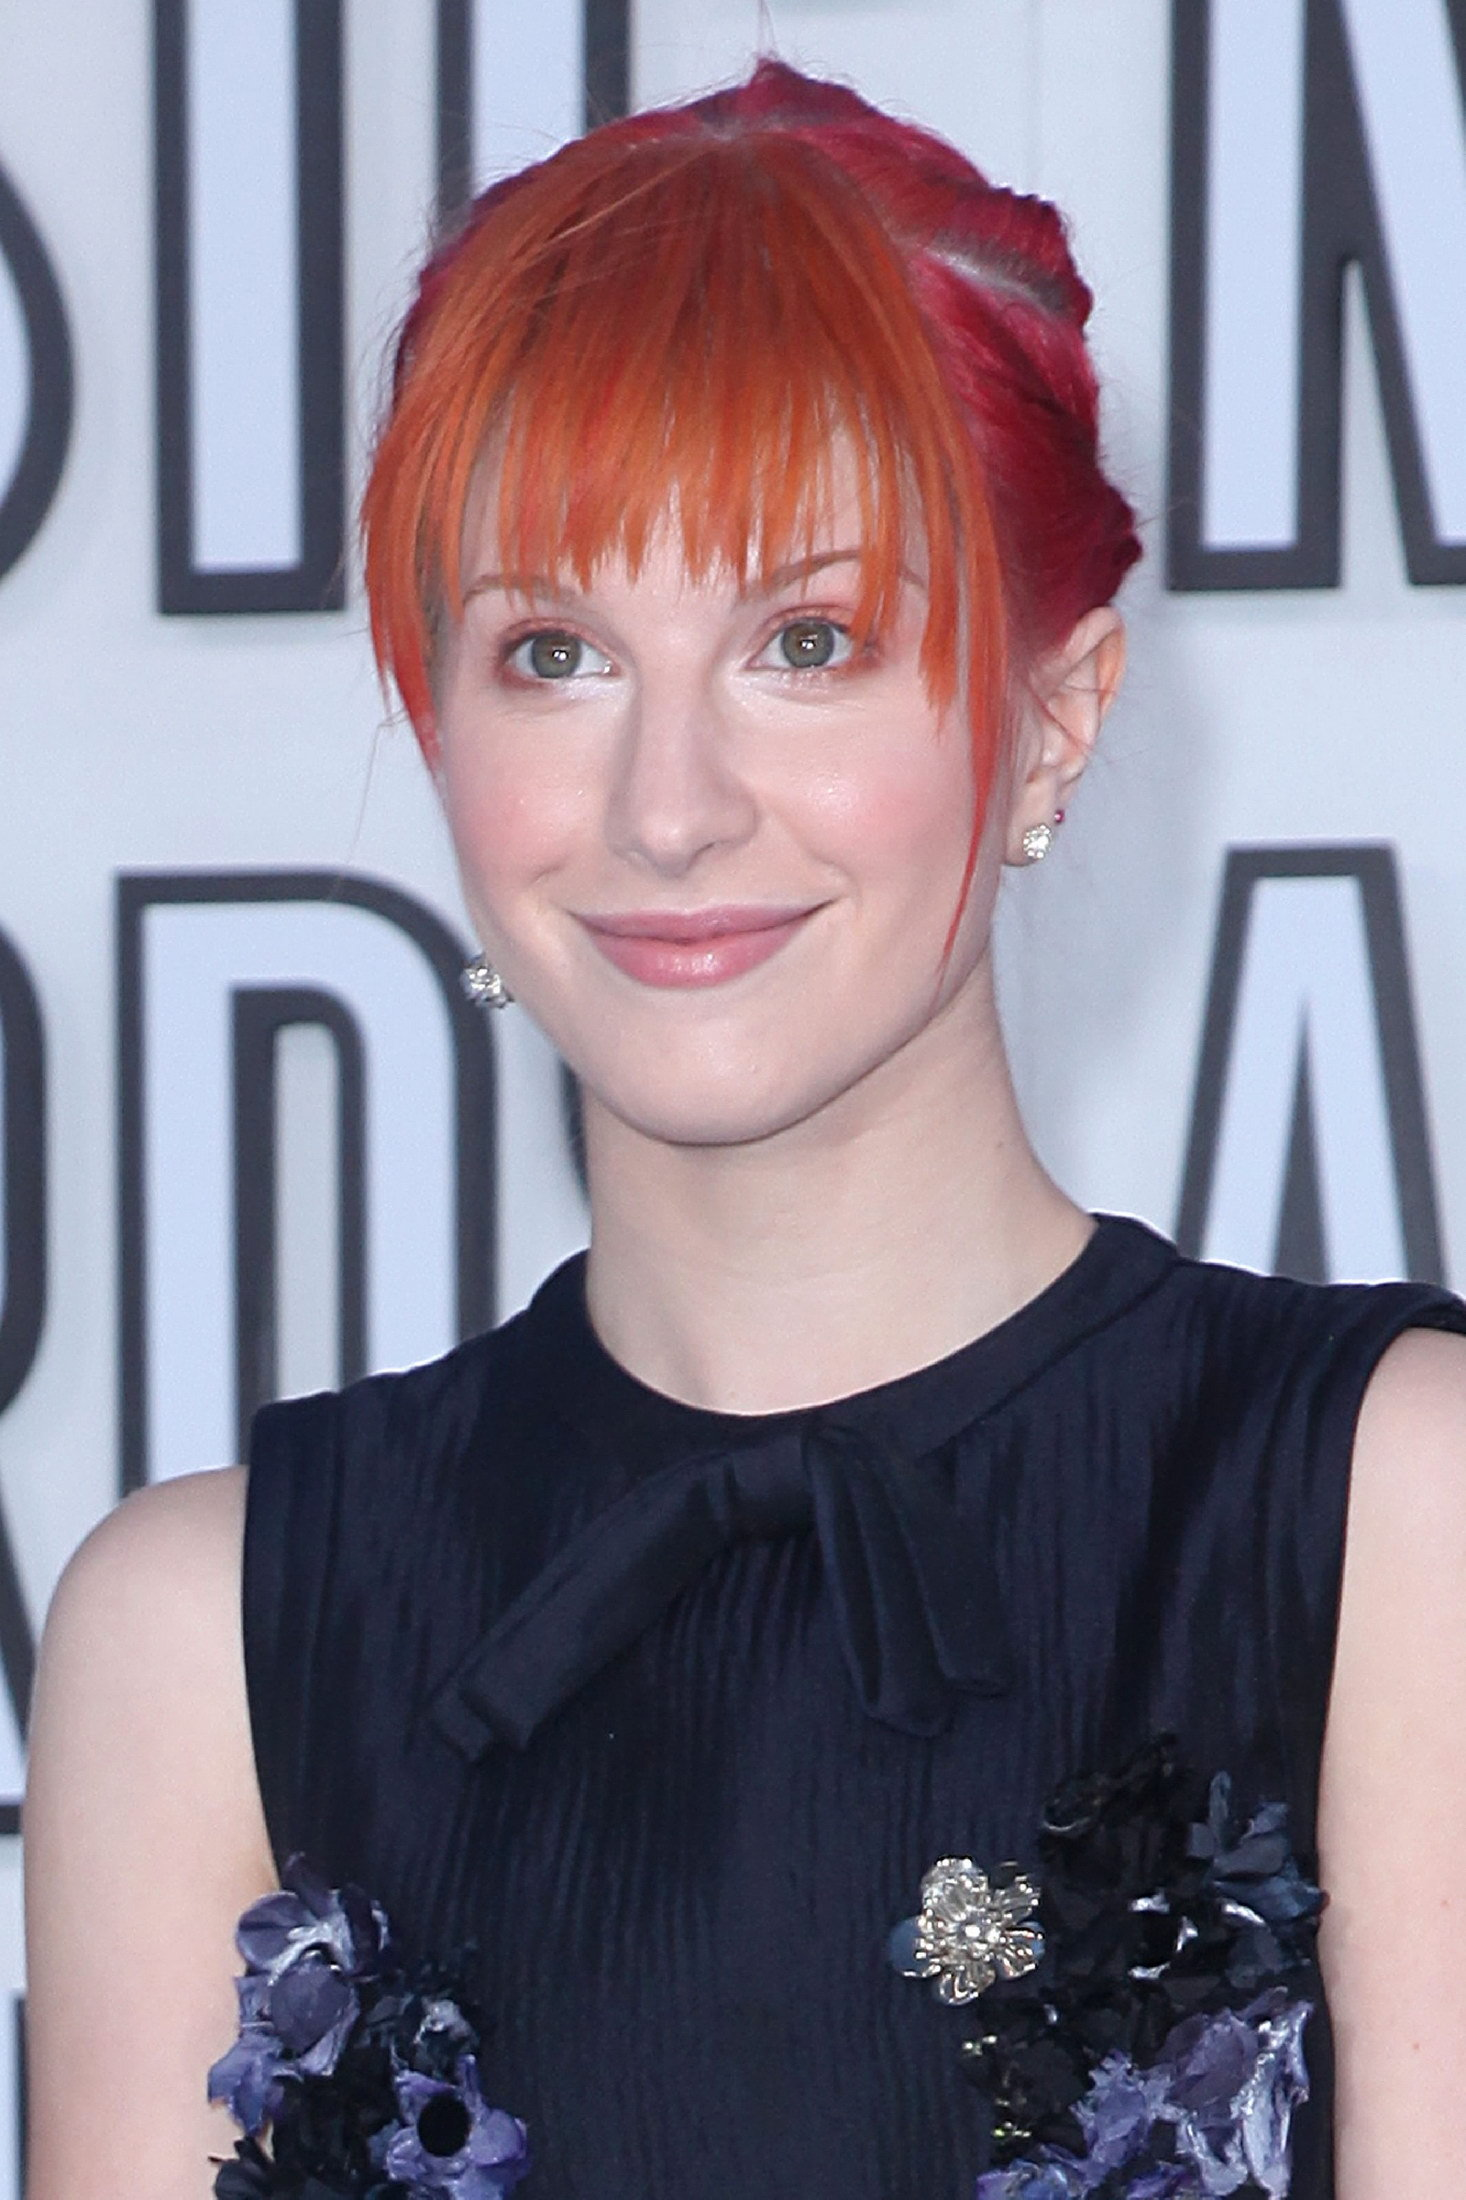 http://images4.fanpop.com/image/photos/15500000/Hayley-at-Video-Music-Awards-2010-paramore-15519181-1466-2200.jpg